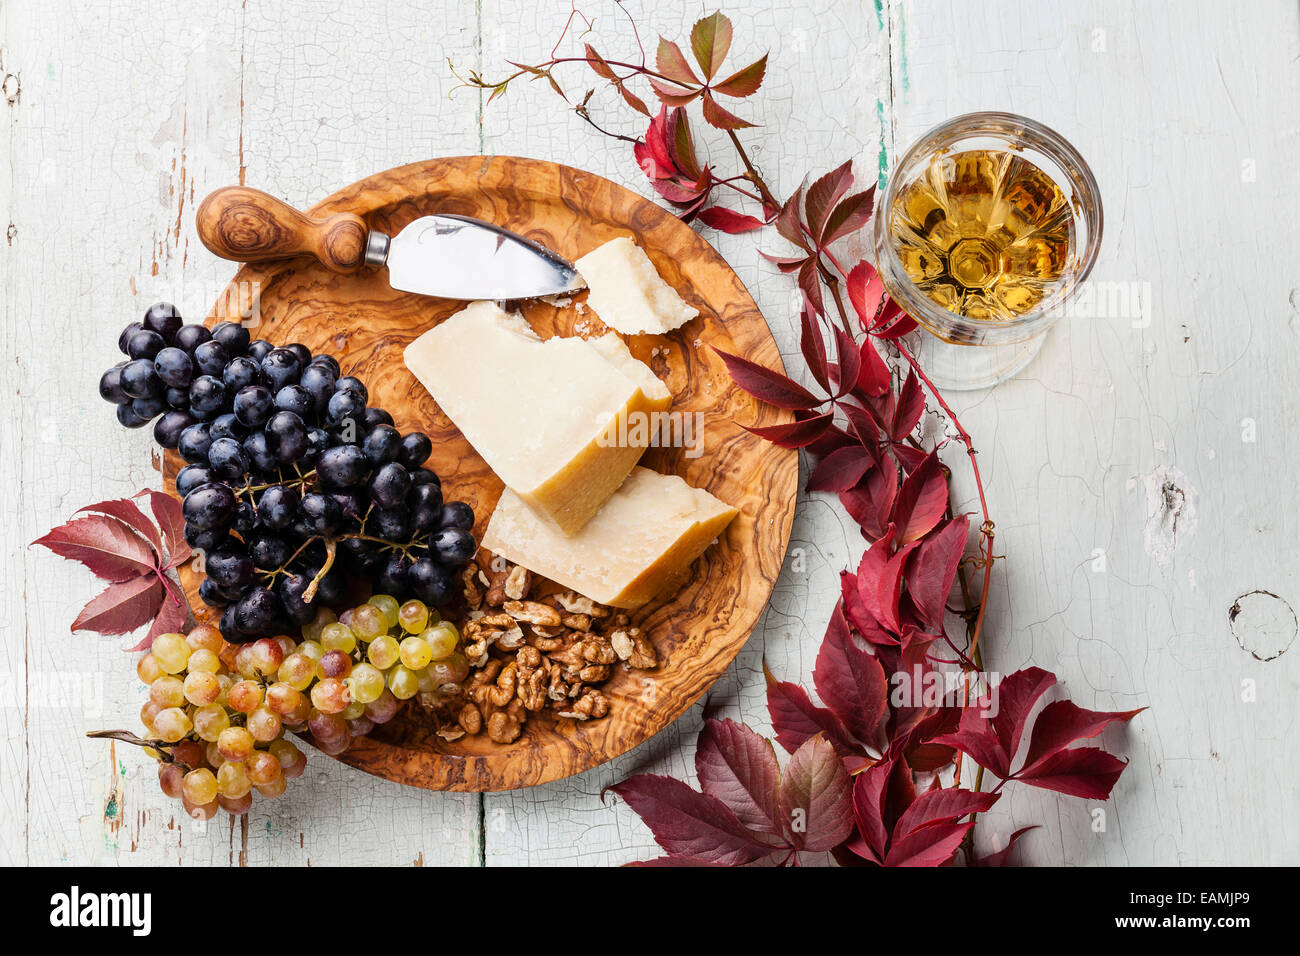 Parmesan cheese and grapes on olive wood plate and wine - Stock Image